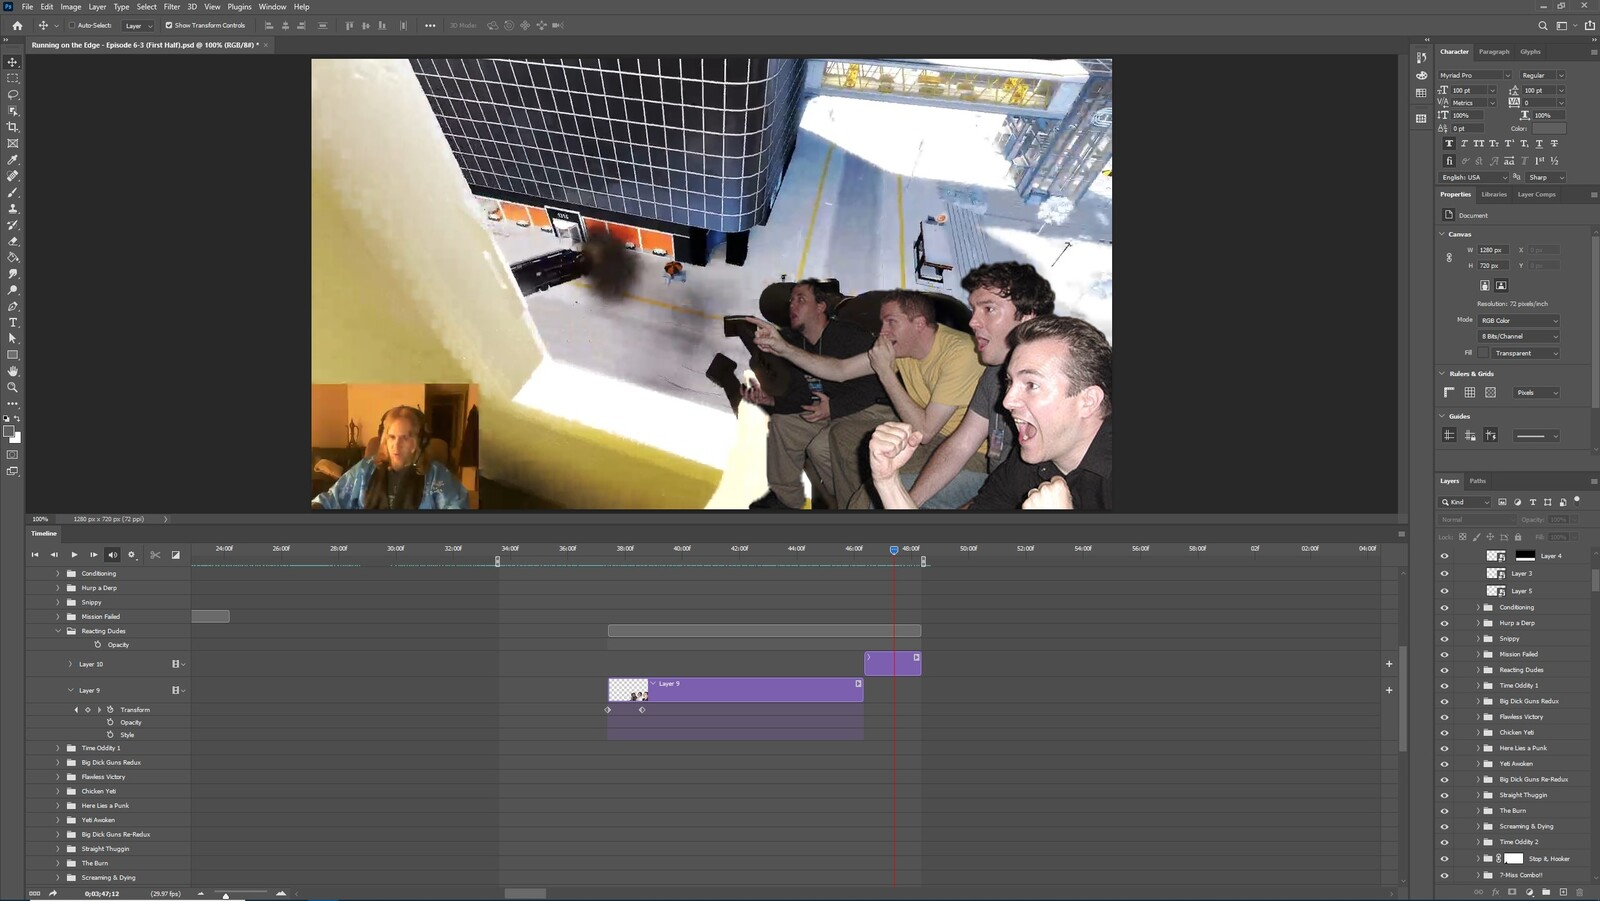 """The """"Gettin a Snippy, Part 3"""" visual effect within Photoshop video editor"""